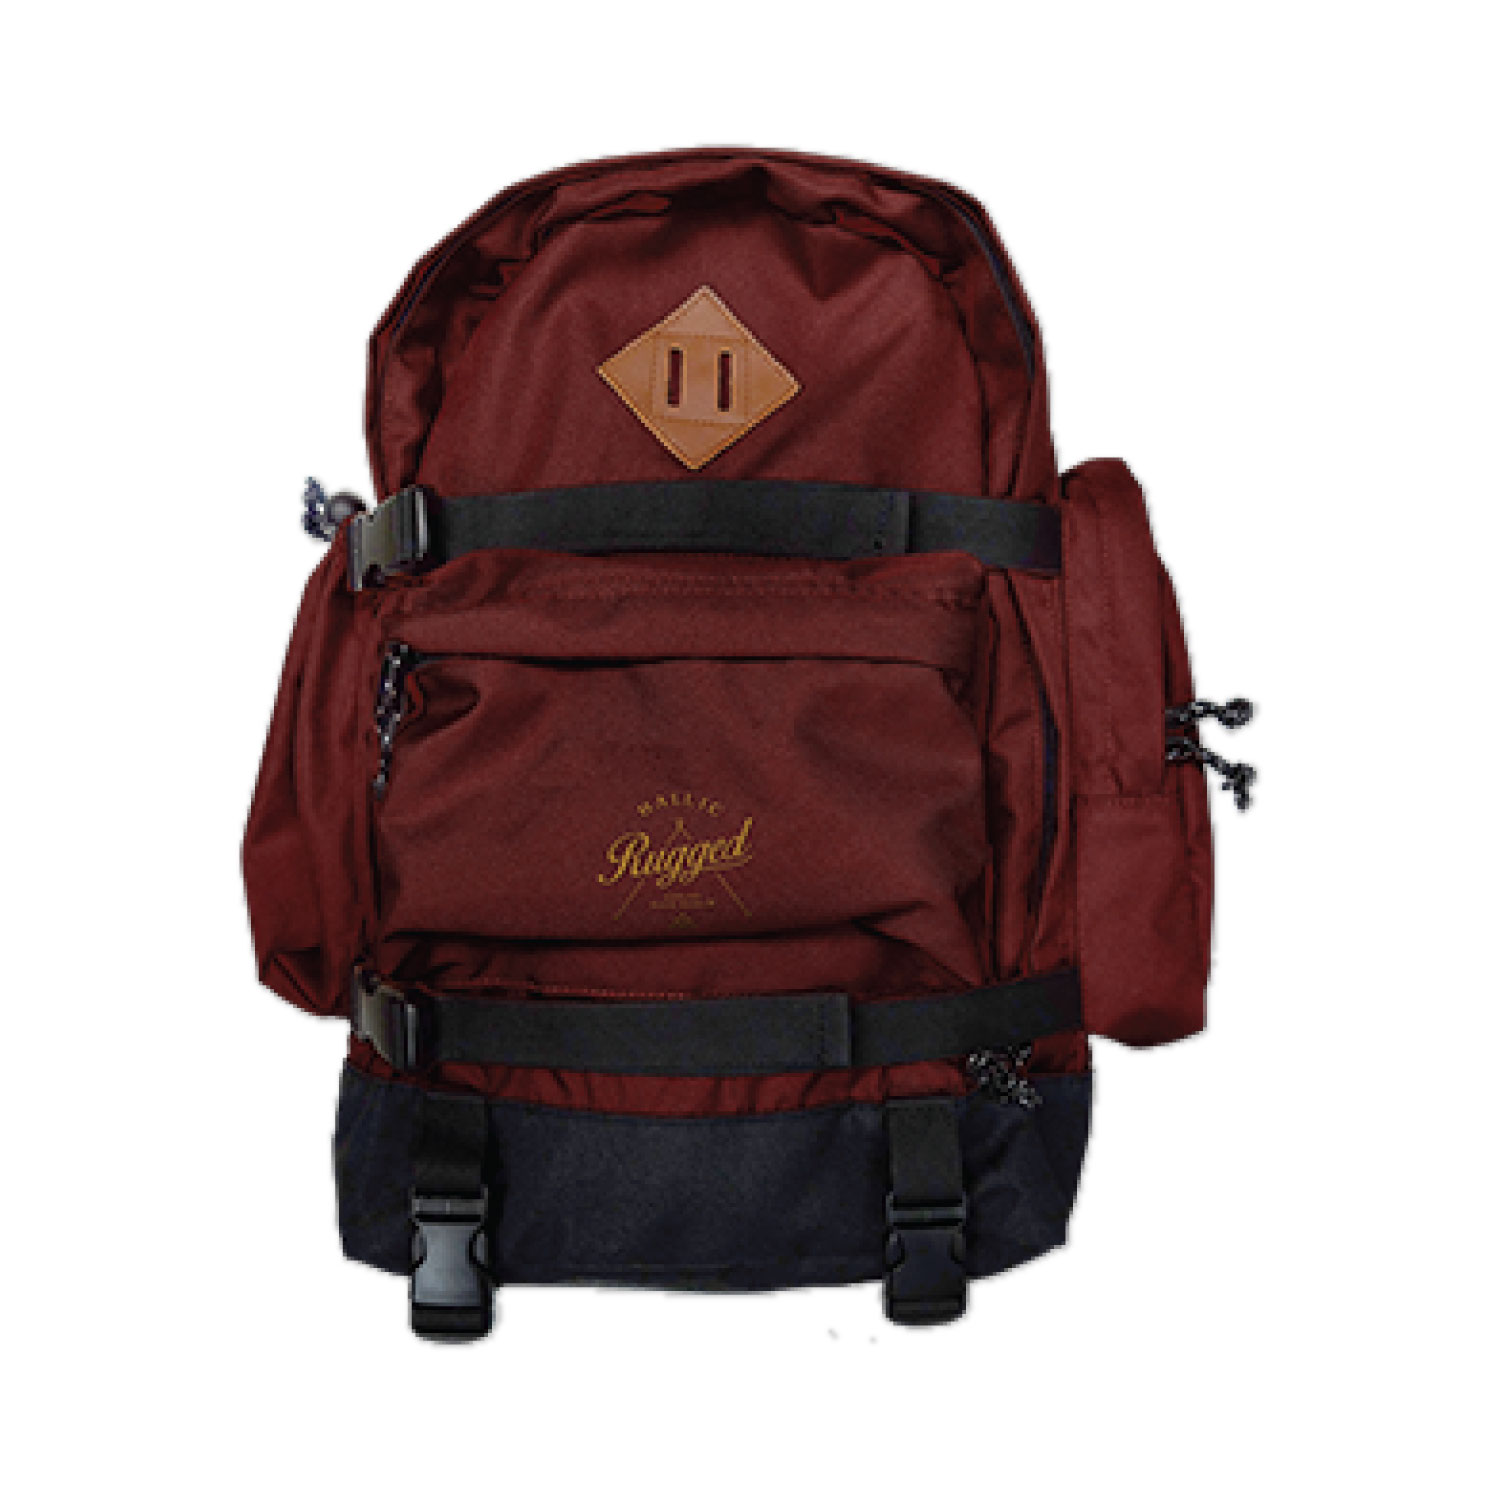 burgundybackpack